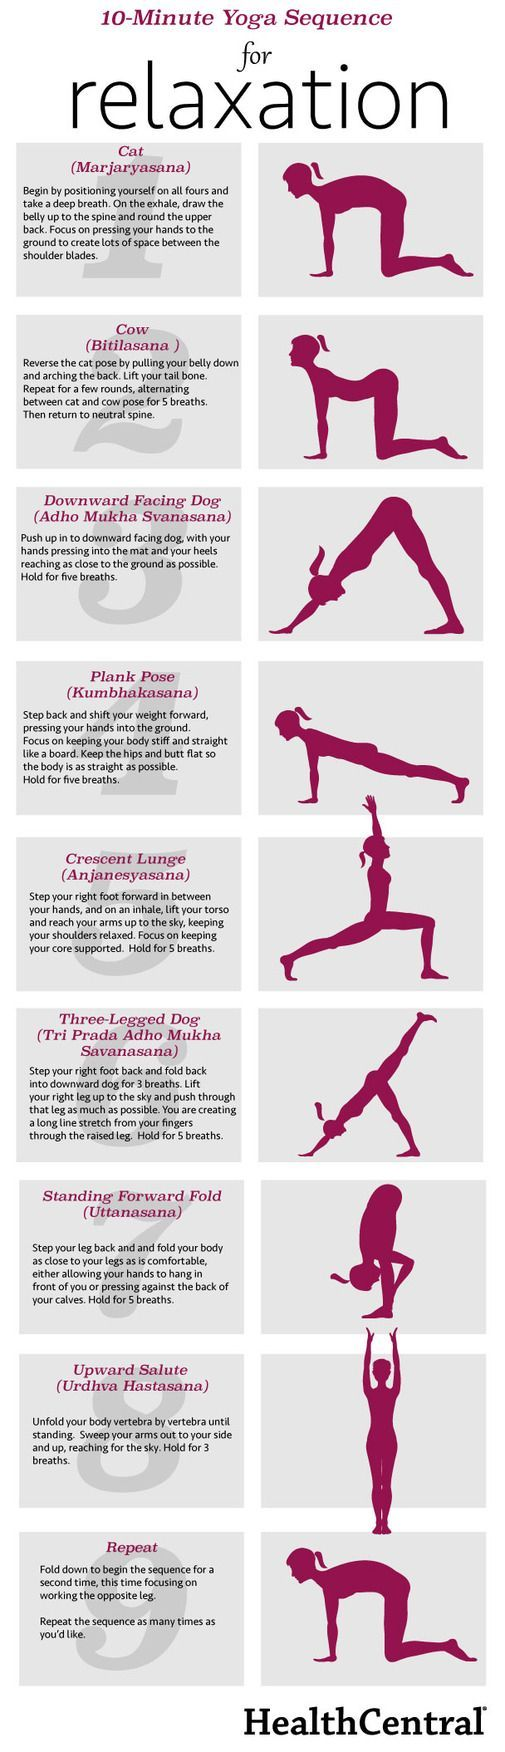 A short but sweet yoga sequence for relaxation, great to do before bed to help you sleep better.